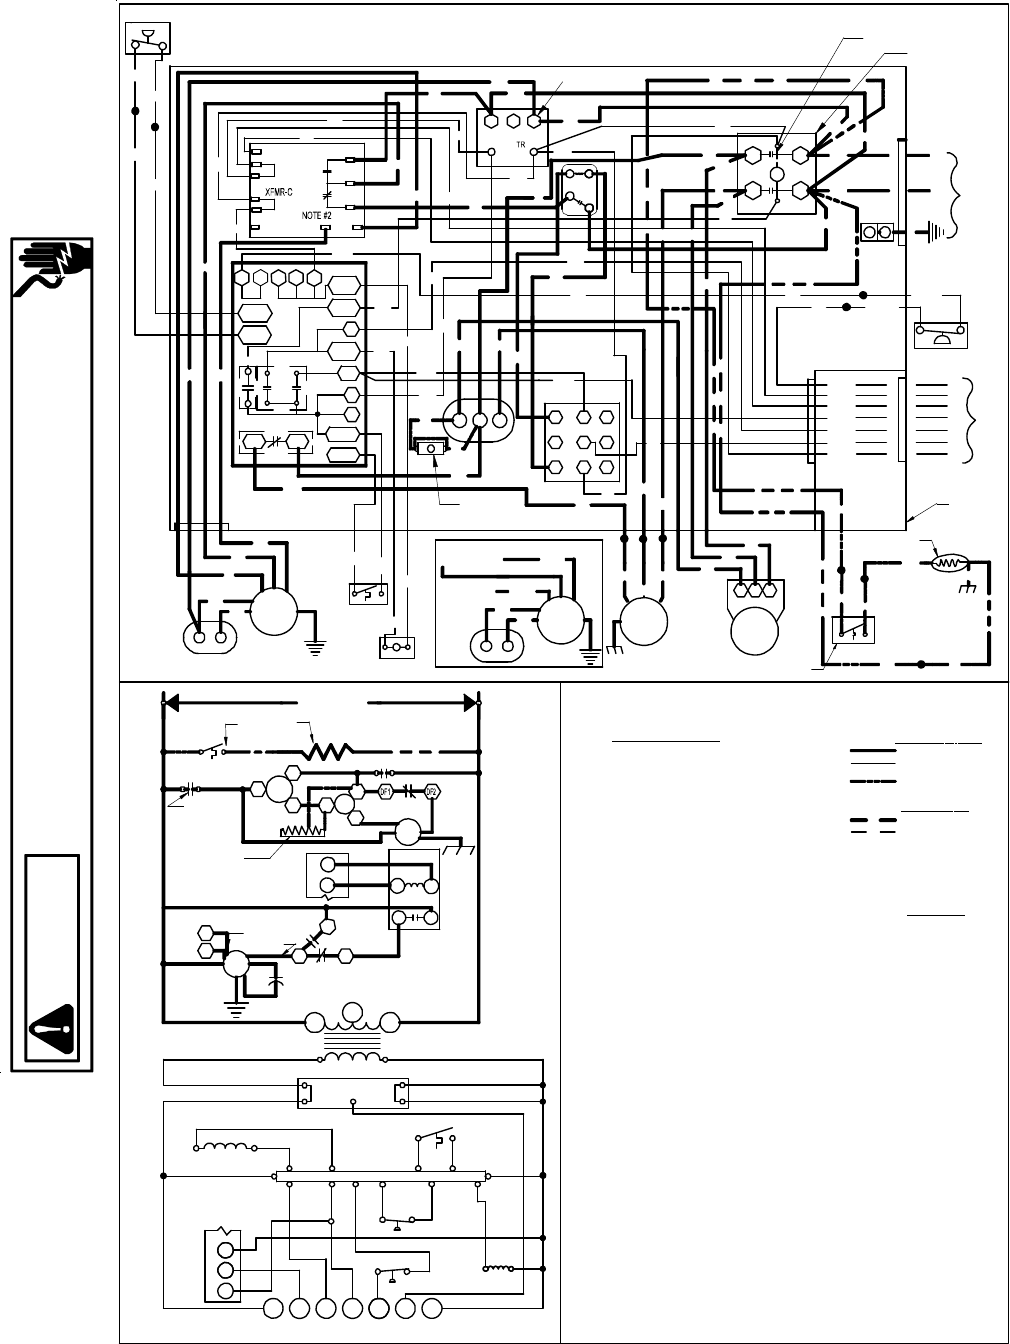 Honeywell Gas Furnace Thermostat Wiring Diagram additionally C969a6a82a7e55bcf45d390bd62b12cc also Gas Valve For Boiler Wiring Diagram besides Gas Furnace Weather King Wiring Diagram further Goodman Heat Pump Wiring Diagram Schematic Wiring Diagrams. on two stage thermostat wiring diagram